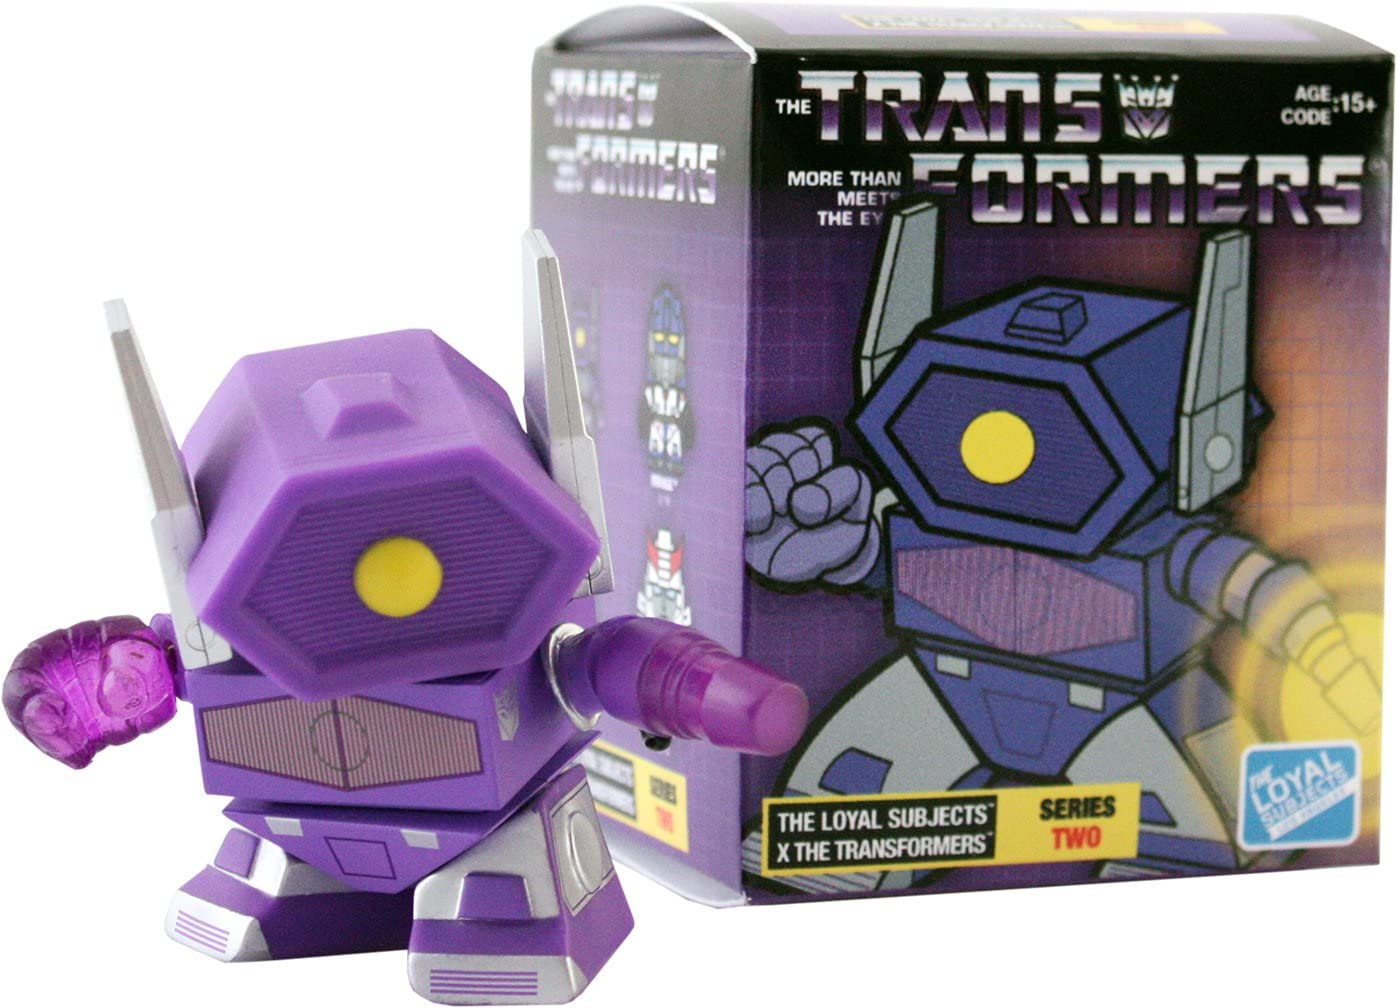 TLSTFS2002 The Loyal Subjects Series 2 Transformers 3 Blind Box Figure Publisher Services Inc PSI